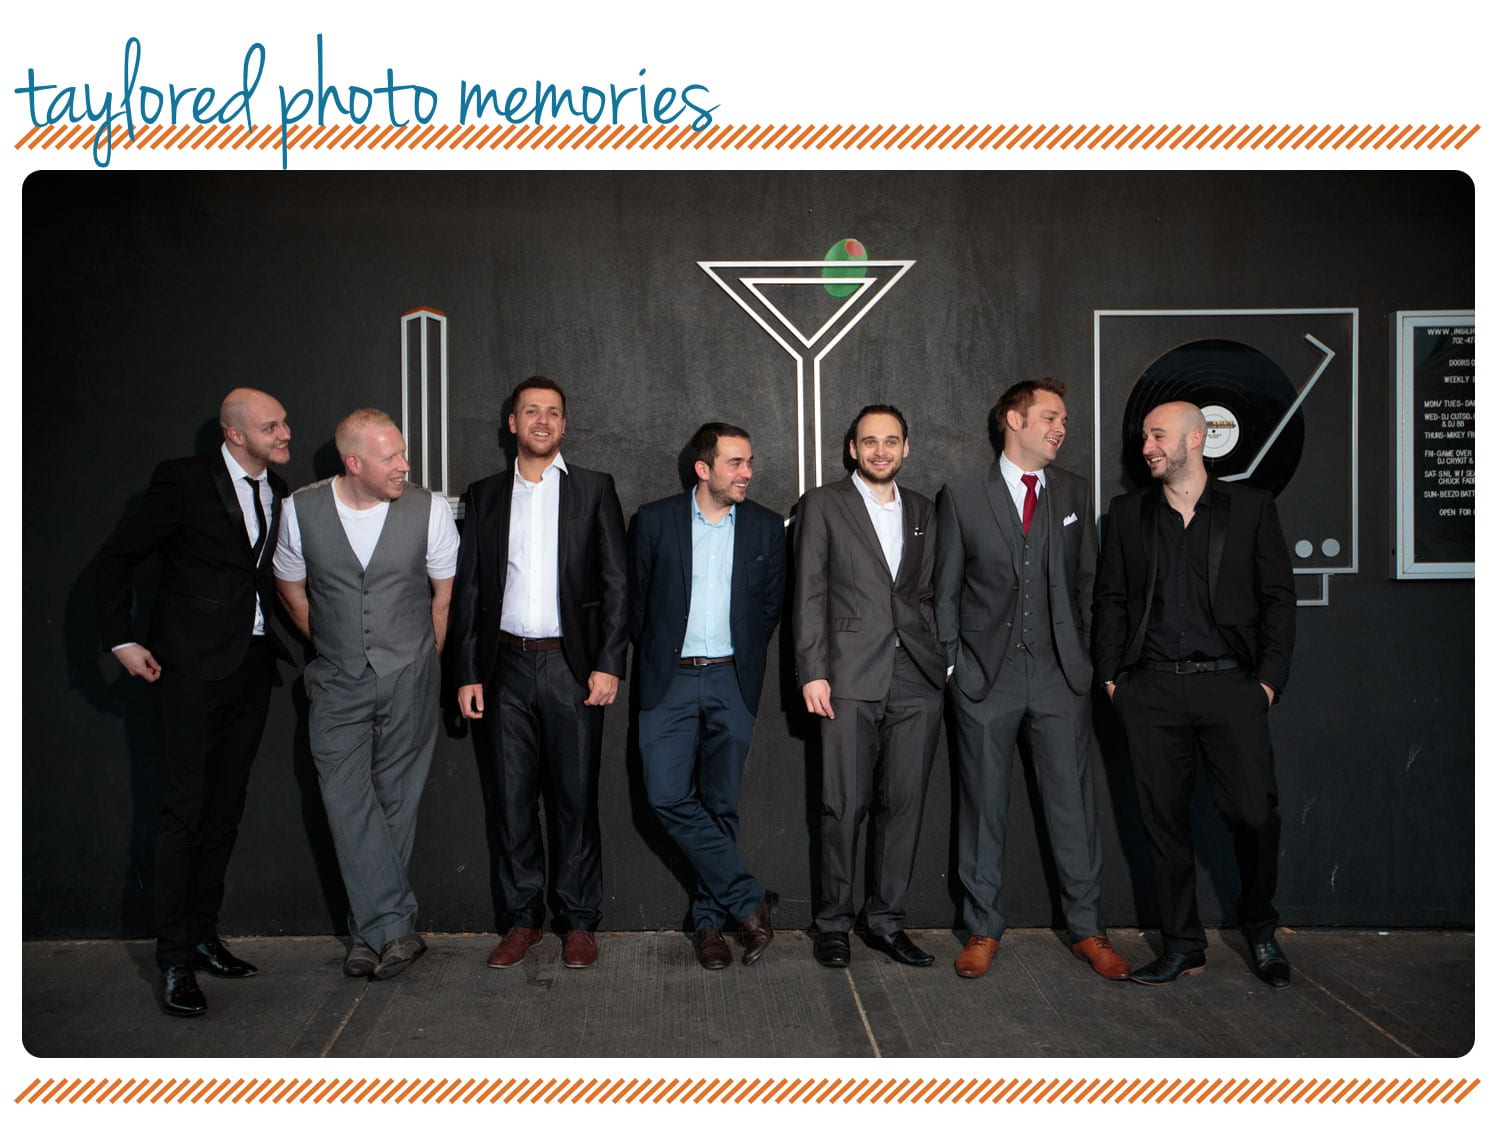 Las Vegas Bachelor Party, DTLV Photos, Las Vegas Elopement Photographer